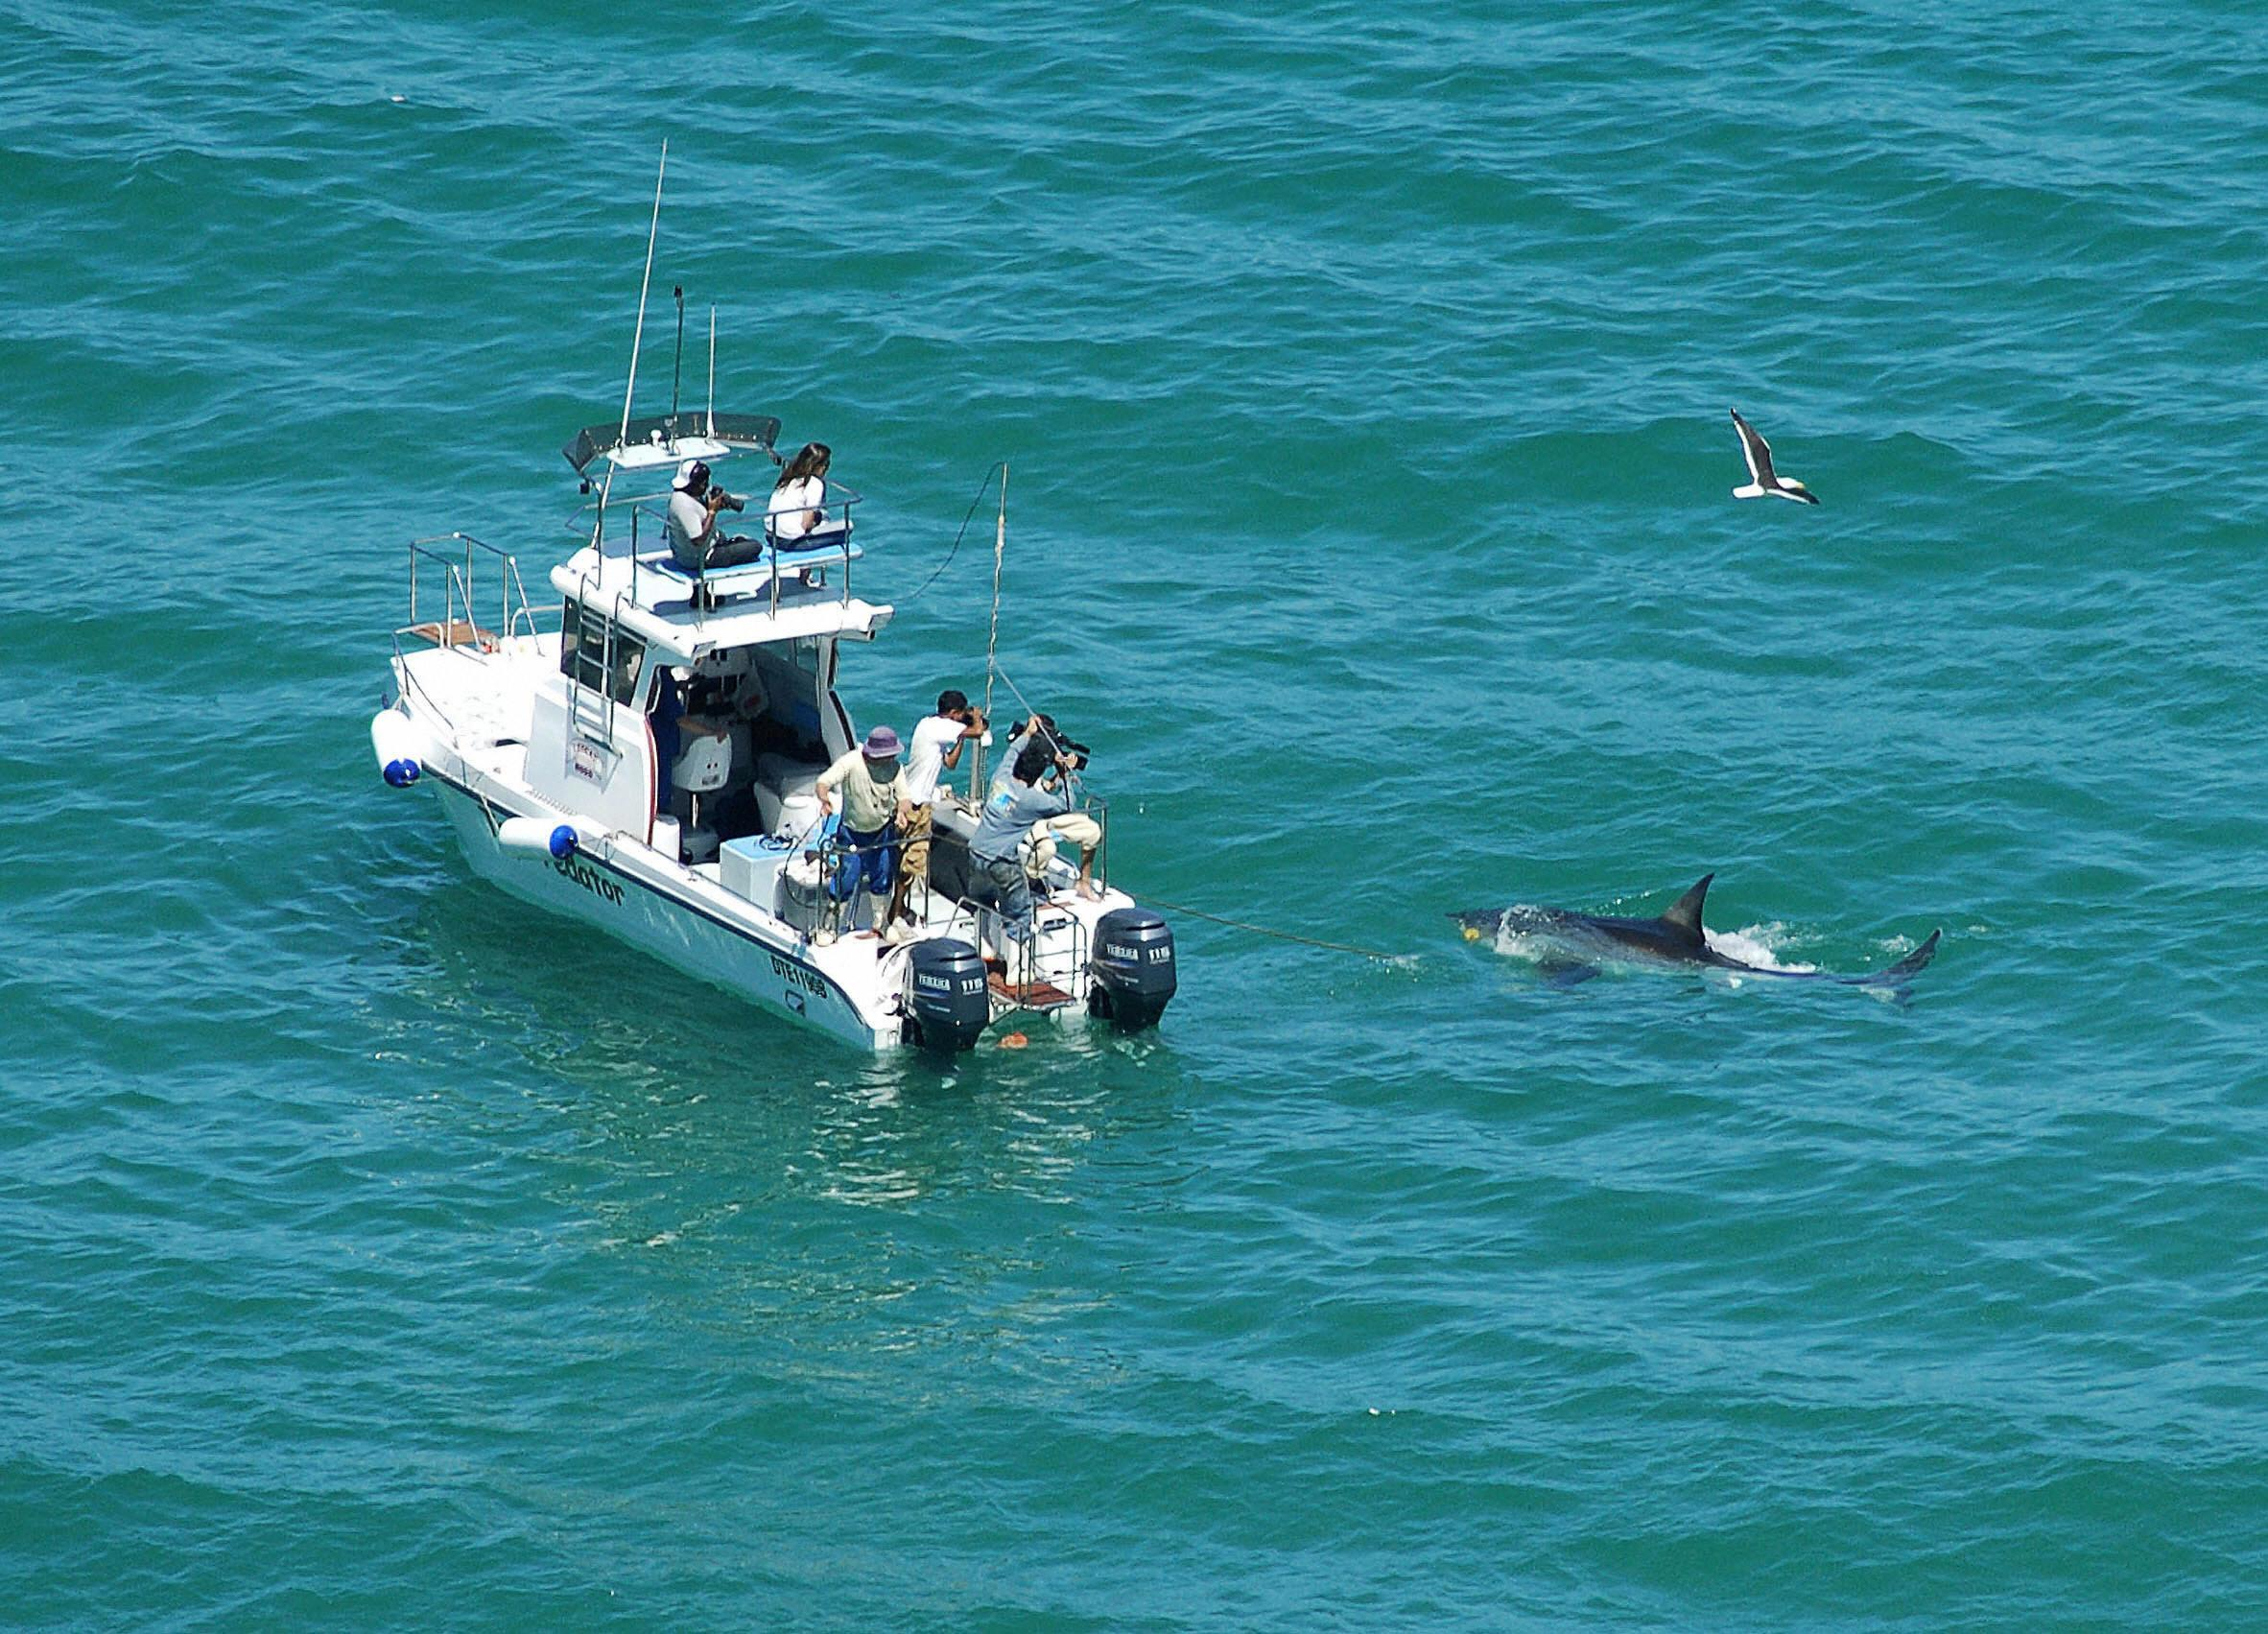 The Coming Crisis: Great White shark lurking off Cape Cod